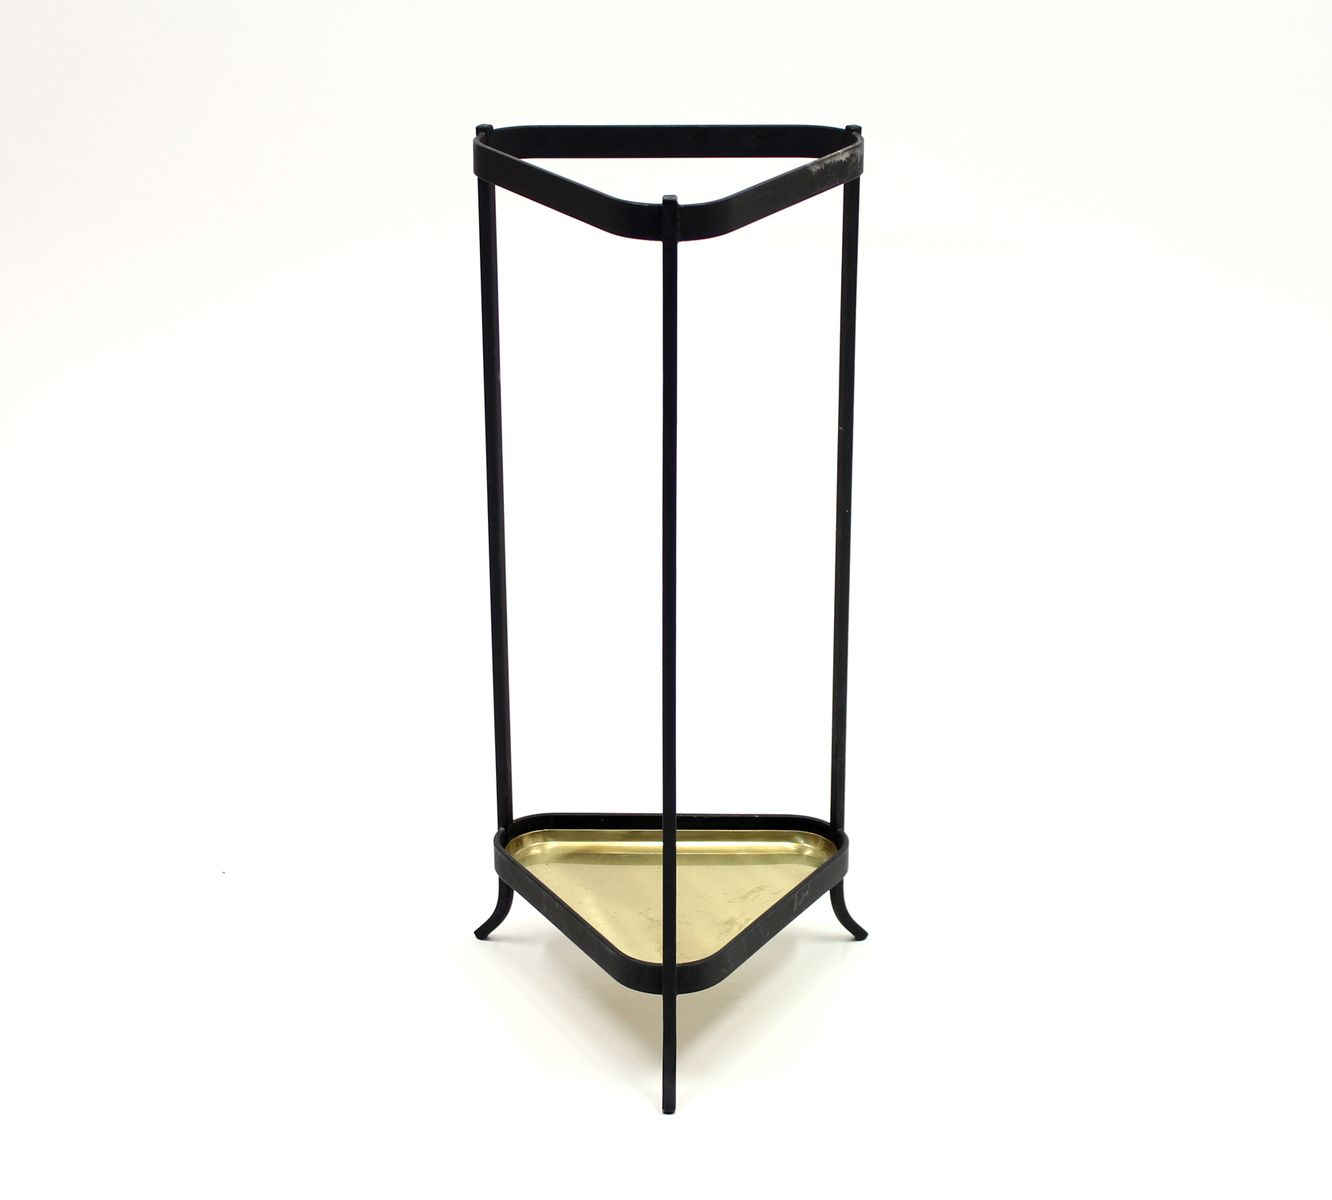 Umbrella Stand Ireland: Swedish Umbrella Stand By Ystad Metall, 1960s For Sale At